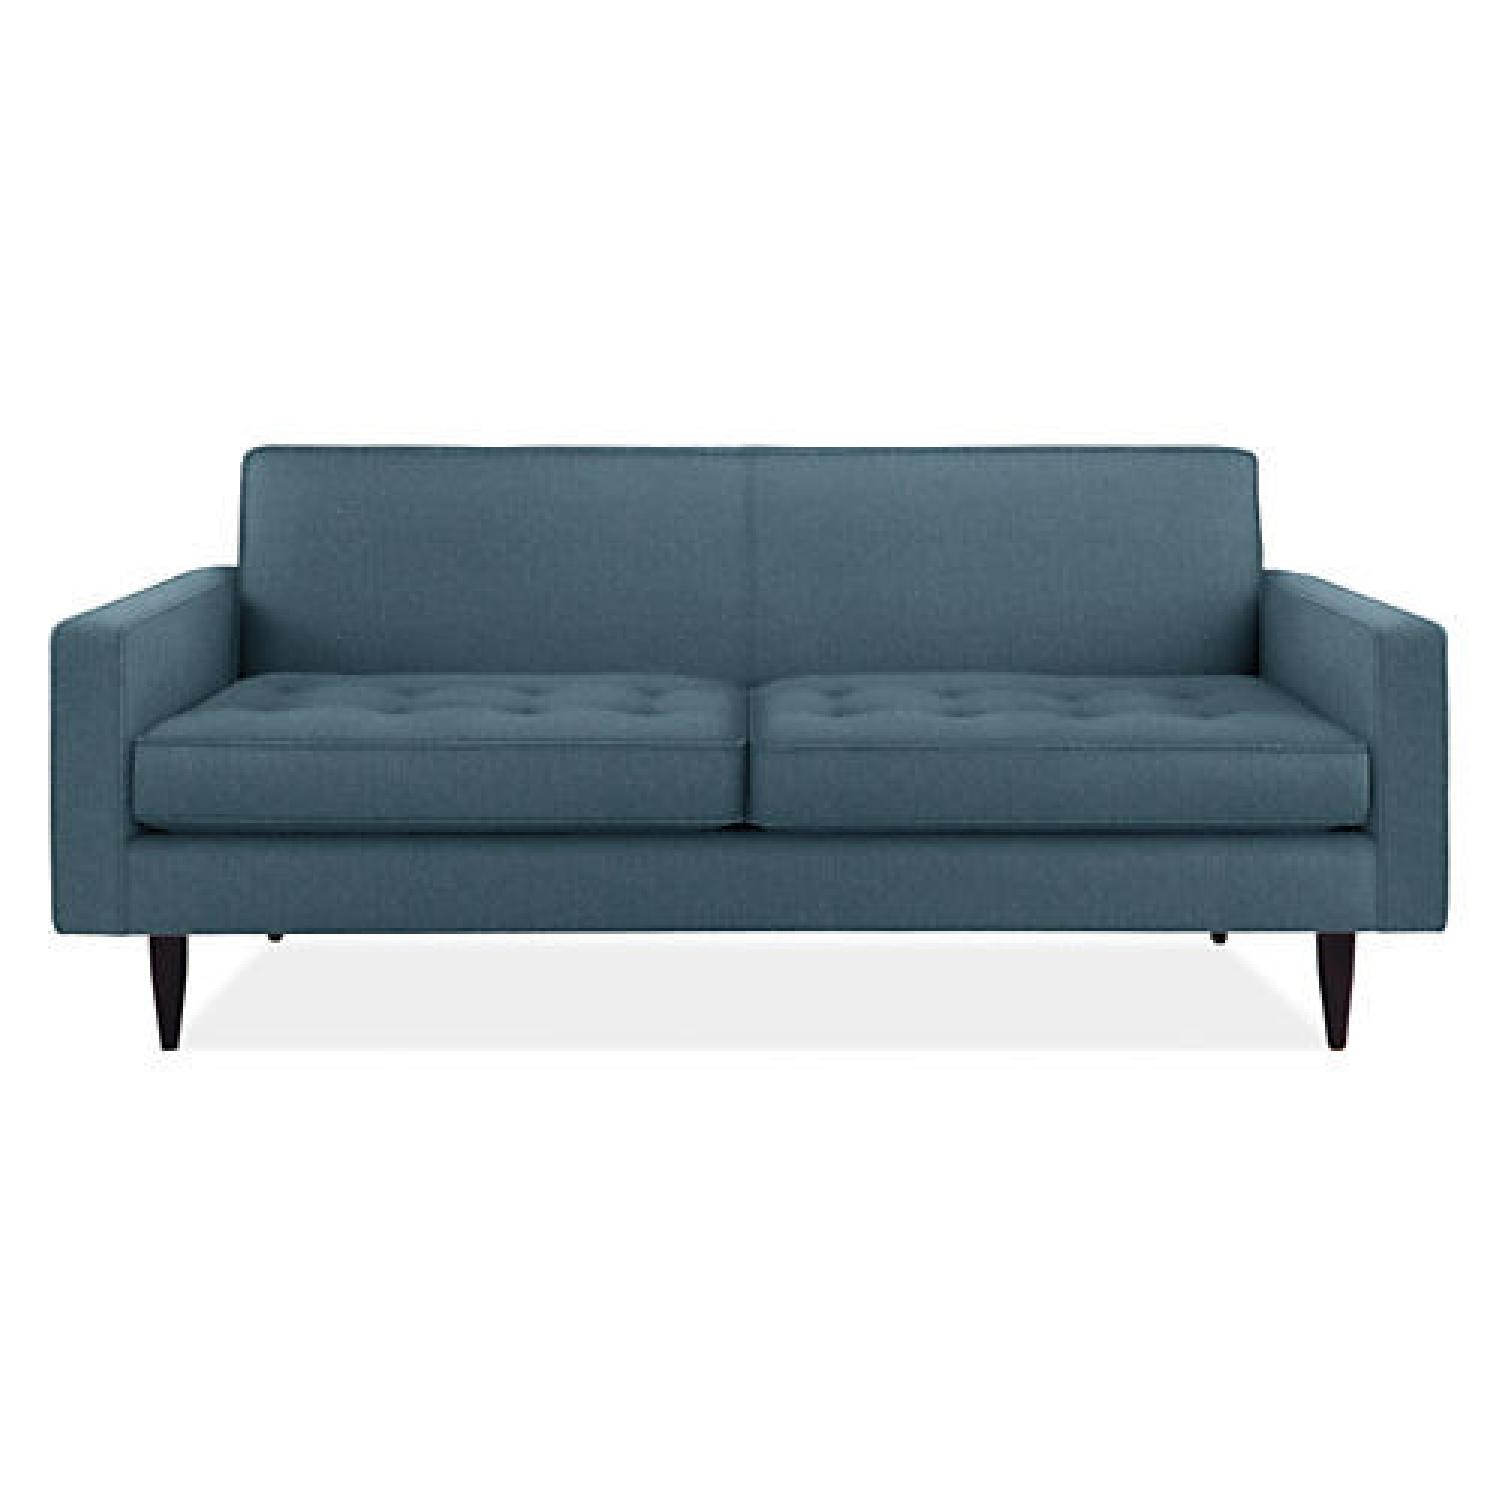 Room and Board Reese Mid-Century Sofa - image-0